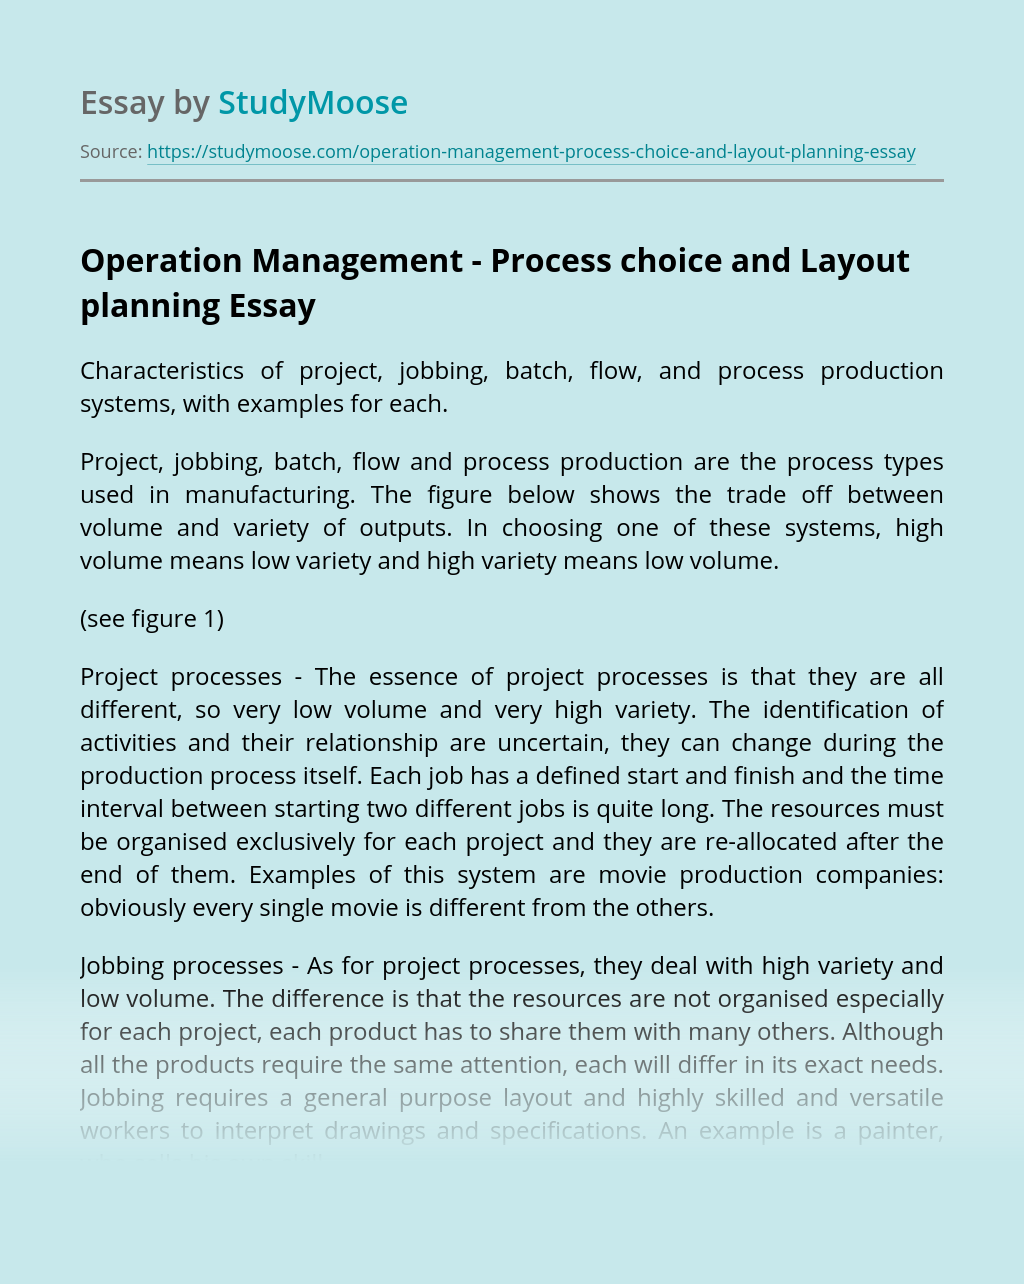 Operation Management - Process choice and Layout planning